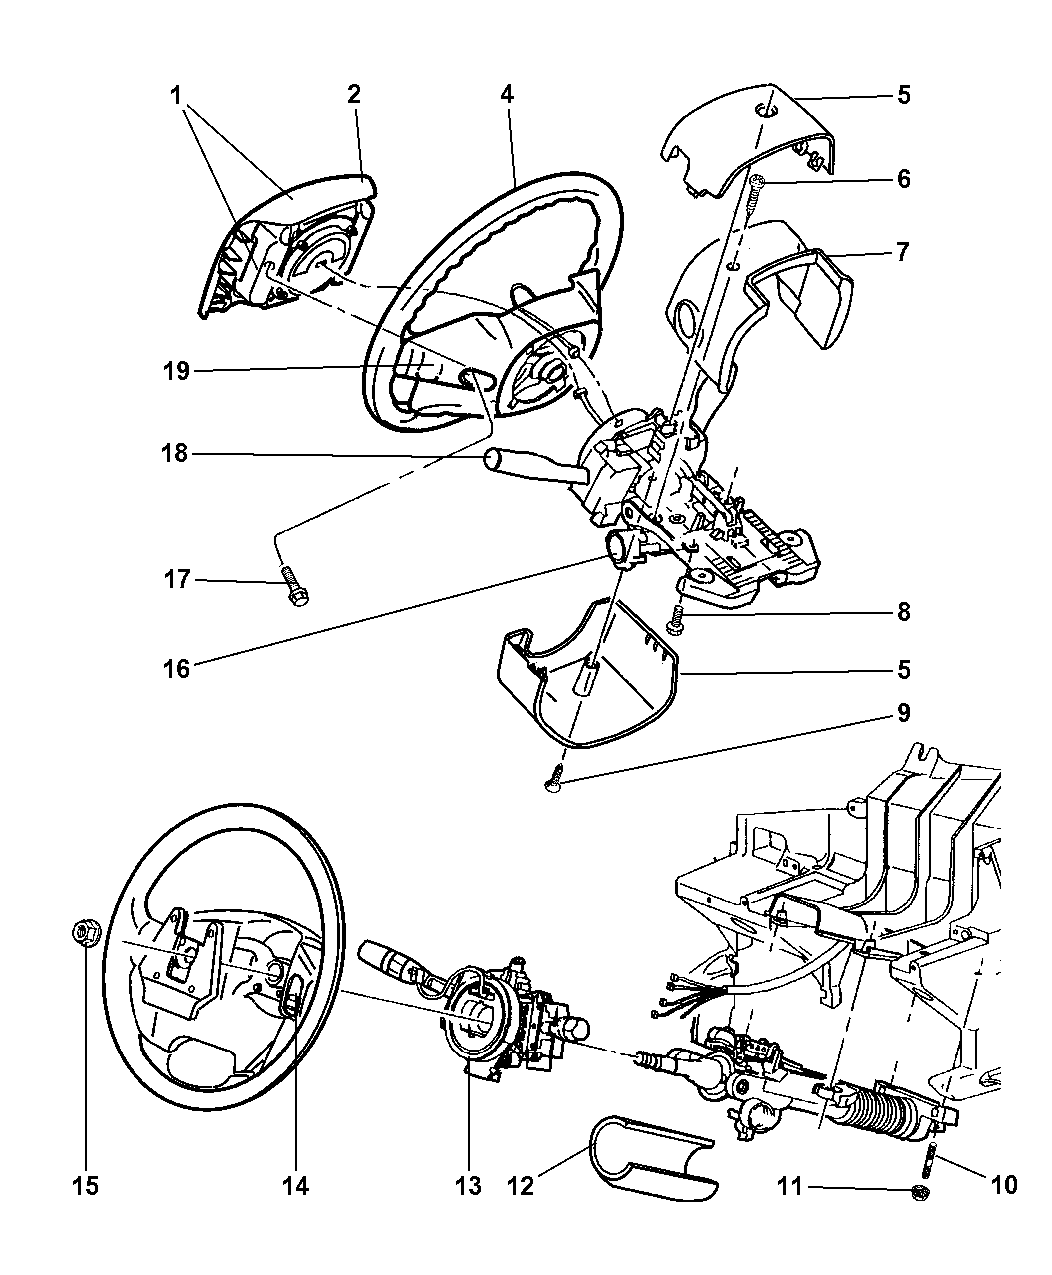 Mopar 56042592AB on jeep grand cherokee differential diagram, 1997 jeep grand cherokee serpentine belt diagram, jeep cherokee xj exhaust system diagram, 04 jeep cherokee steering diagram, jeep steering column parts diagram, jeep grand cherokee exhaust system diagram, jeep wrangler tj steering column diagram, 1993 jeep steering column diagram, jeep cj7 wiper wiring diagram, jeep yj steering column repair, 89 jeep cherokee fuse panel diagram, jeep cherokee steering parts diagram, 1996 jeep cherokee steering diagram, jeep comanche steering column diagram, 2000 jeep cherokee steering diagram, jeep wrangler yj steering column diagram, jeep grand cherokee radiator diagram, jeep grand cherokee distributor diagram, jeep wagoneer steering column diagram, jeep grand cherokee cooling system diagram,